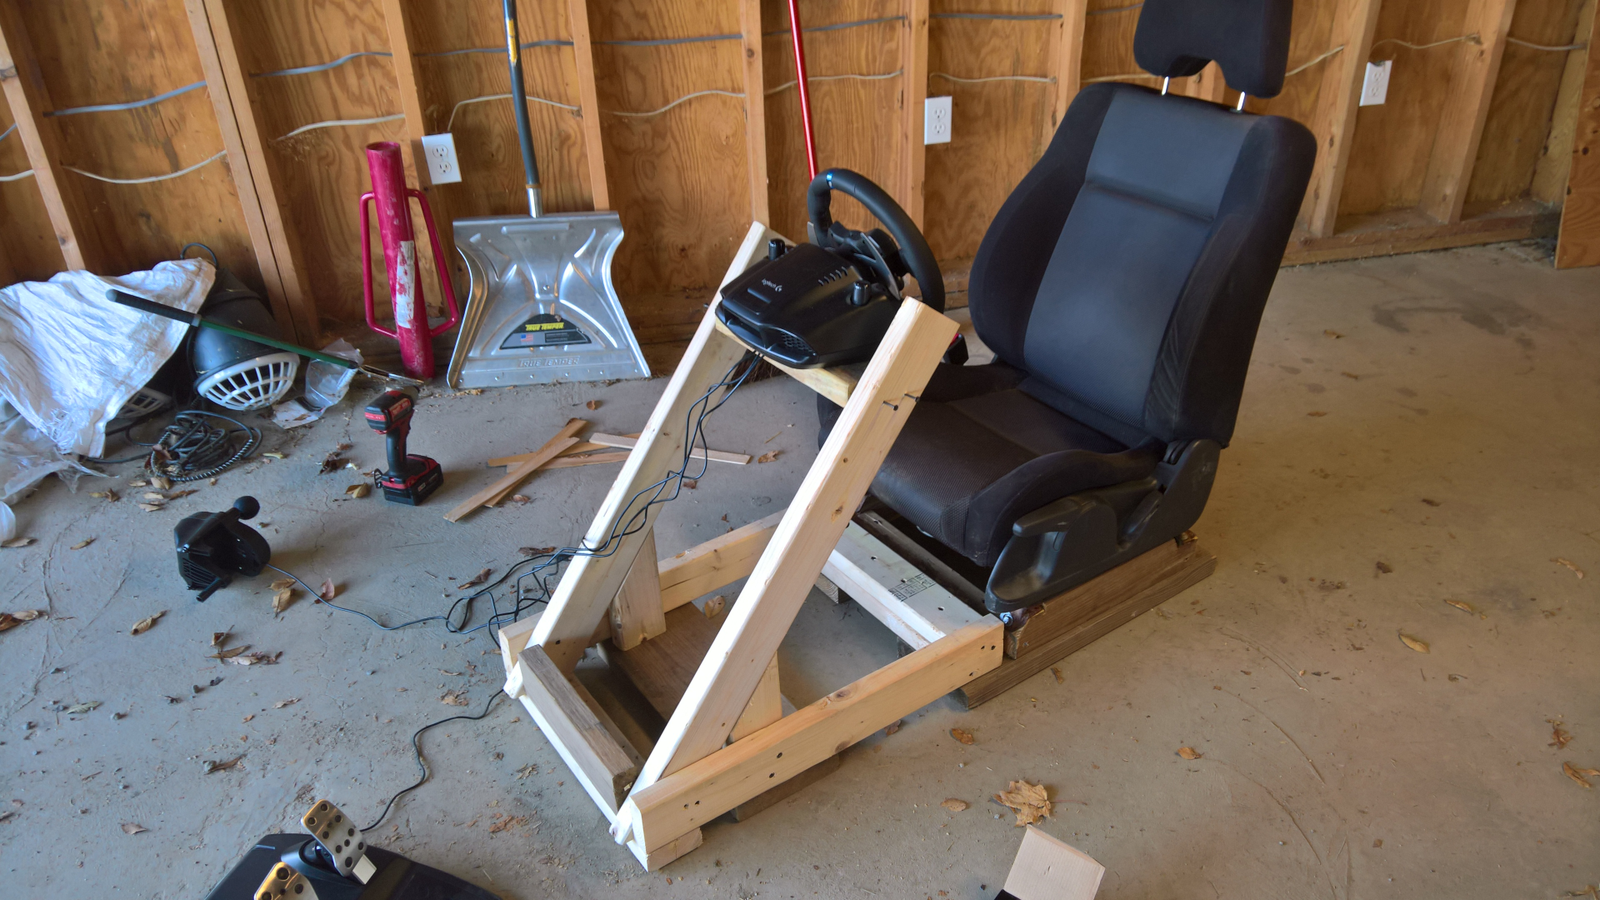 braces installed, and test fitting the wheel support...